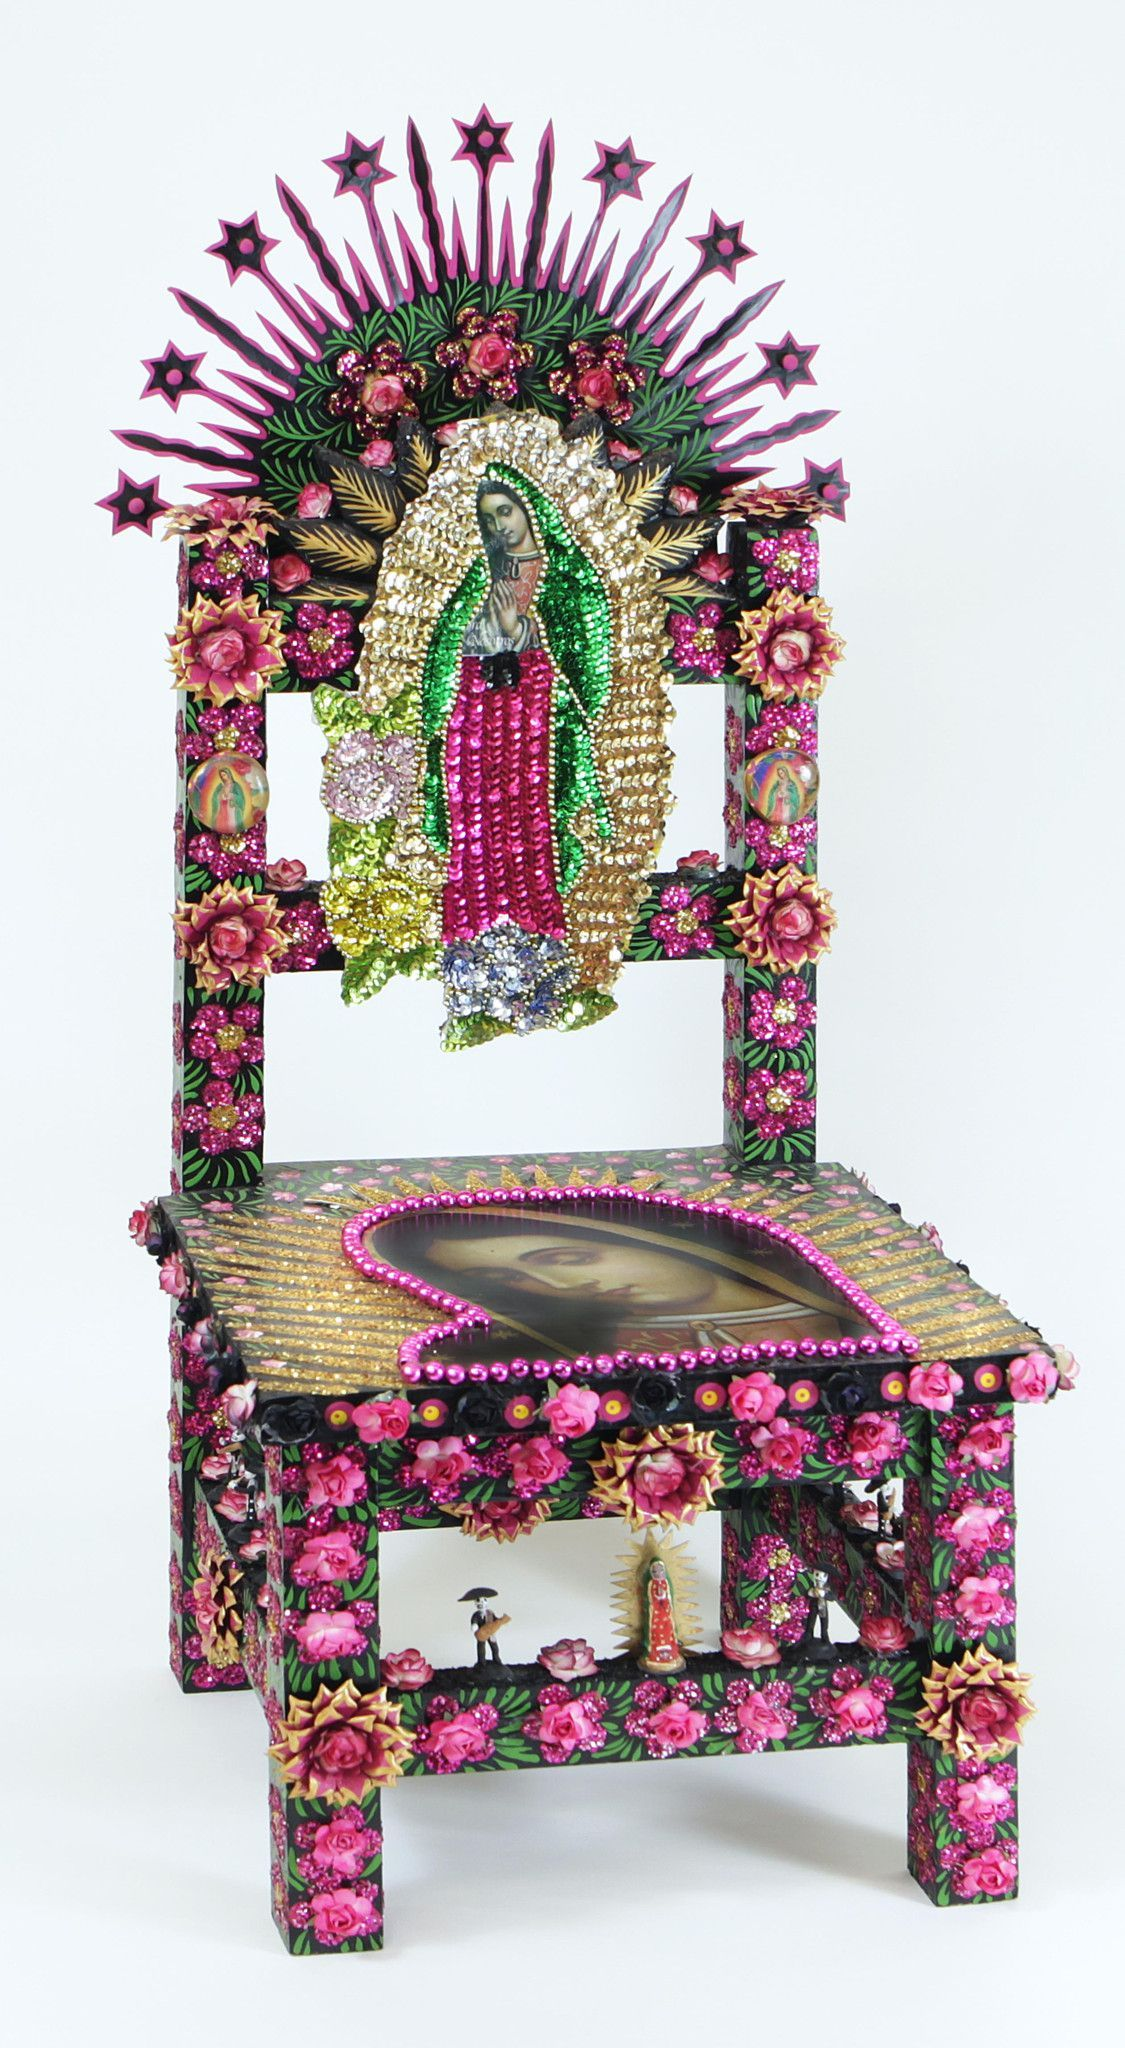 This vibrant and imaginatively decorative chair featuring the Virgin of Guadalupe was handpainted and decorated by local artisans in San Miguel de Allende, Mexico. A wire is assembled on the back enab